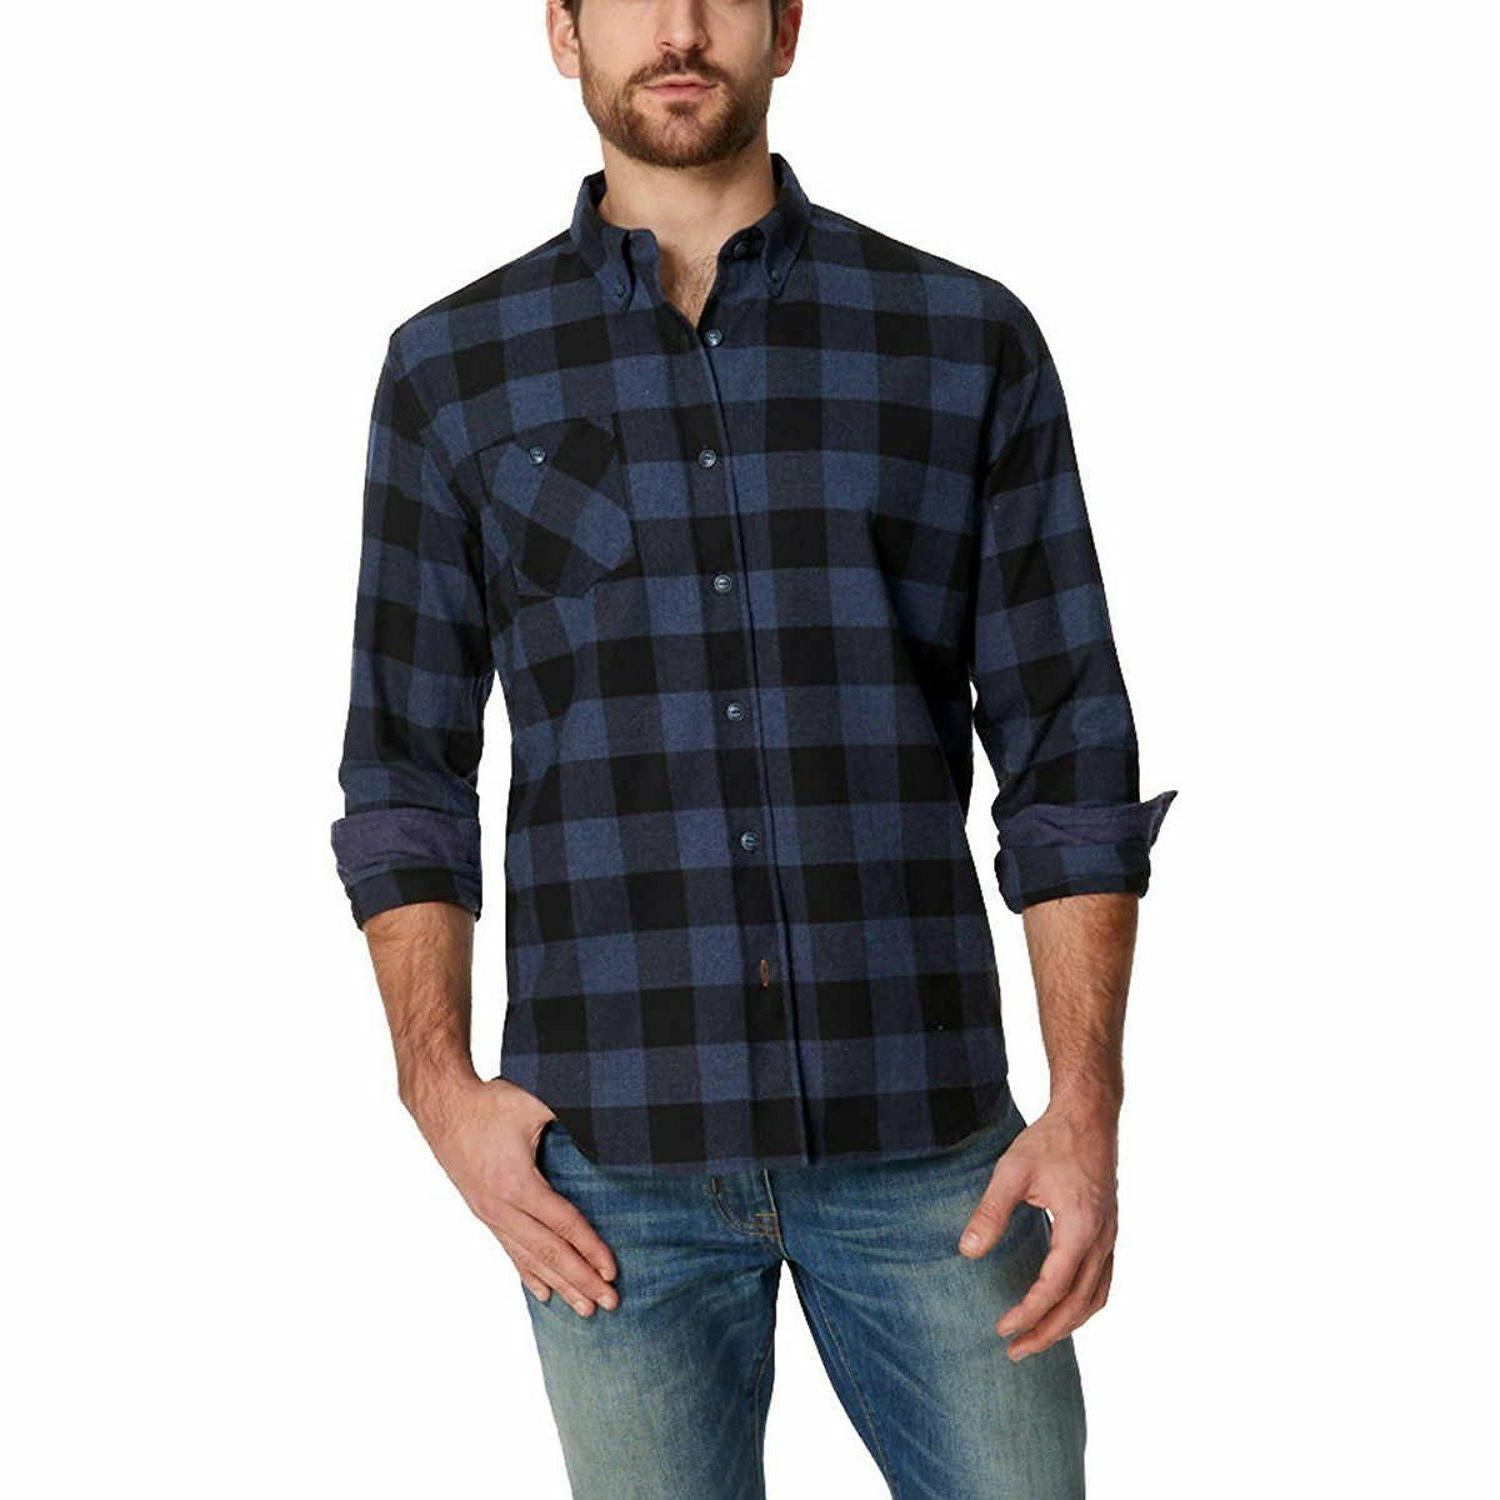 Weatherproof Men's Long Sleeve Flannel Shirts